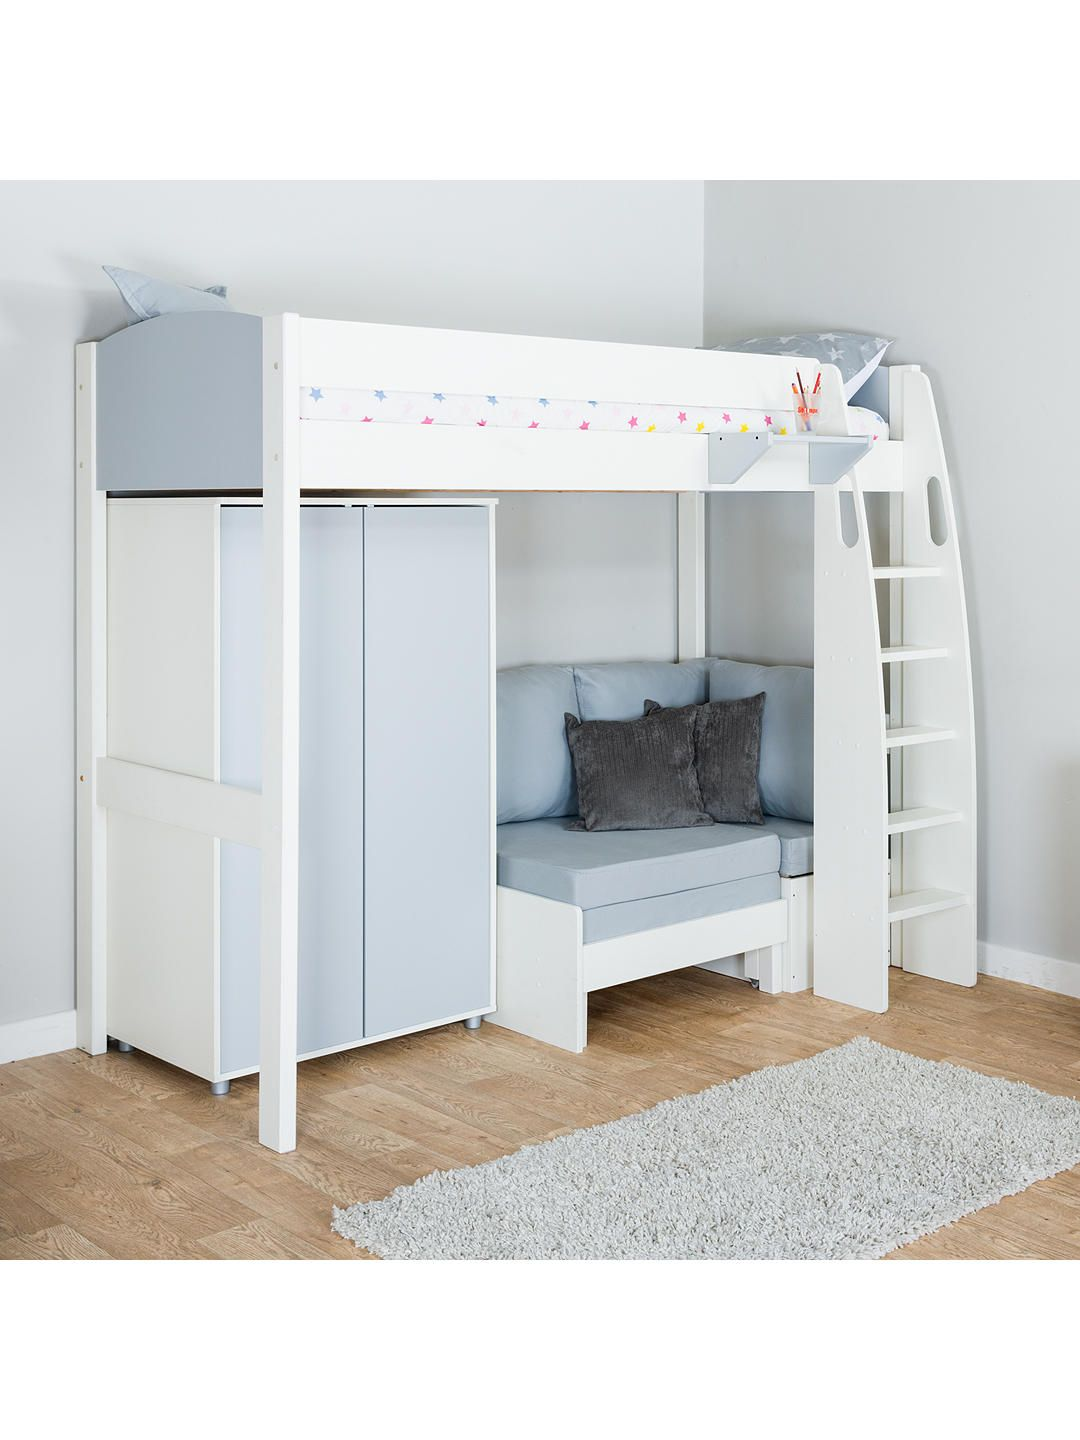 Magnificent Stompa Uno S Plus High Sleeper Bed With Wardrobe And Chair Theyellowbook Wood Chair Design Ideas Theyellowbookinfo